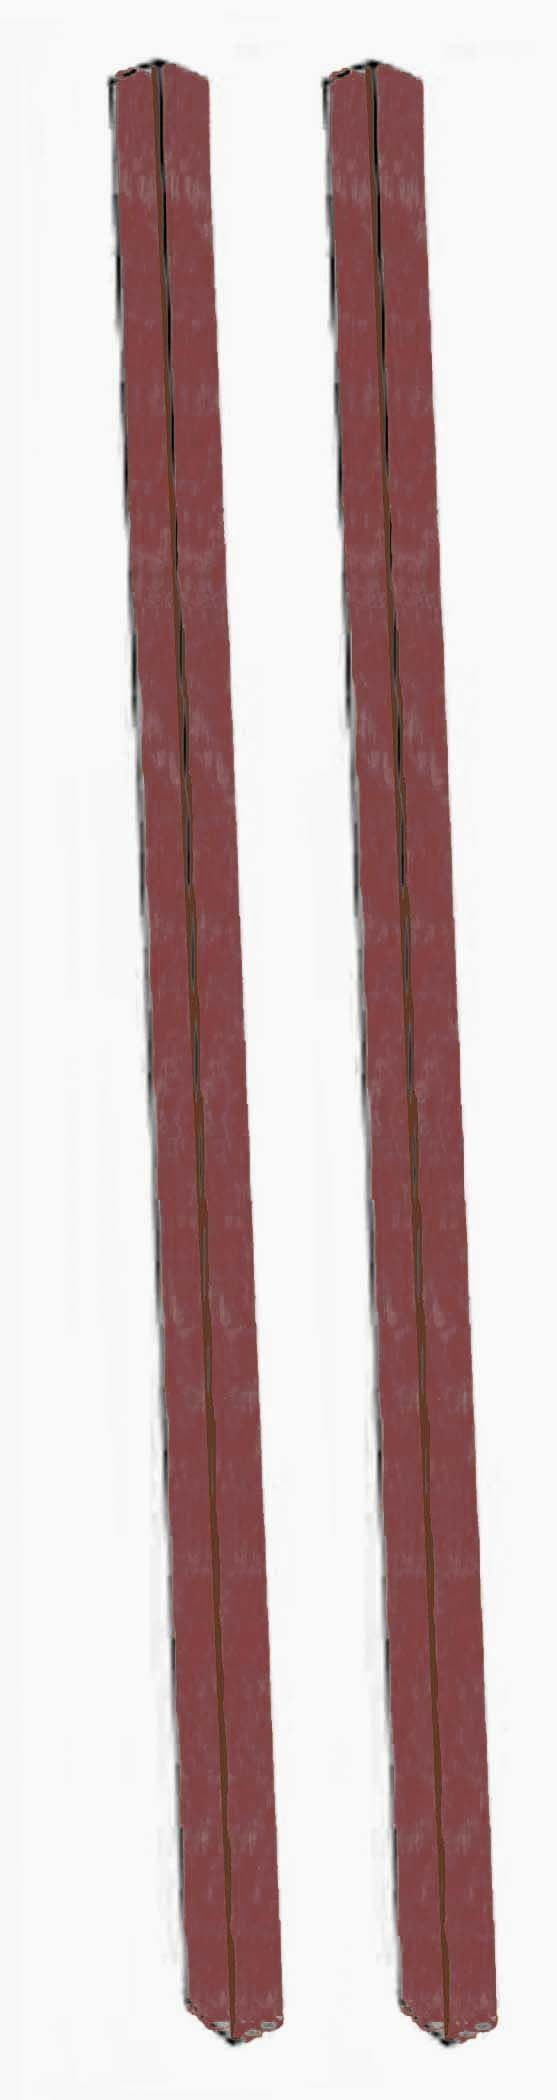 Rosewood Plastic Lumber Post Set